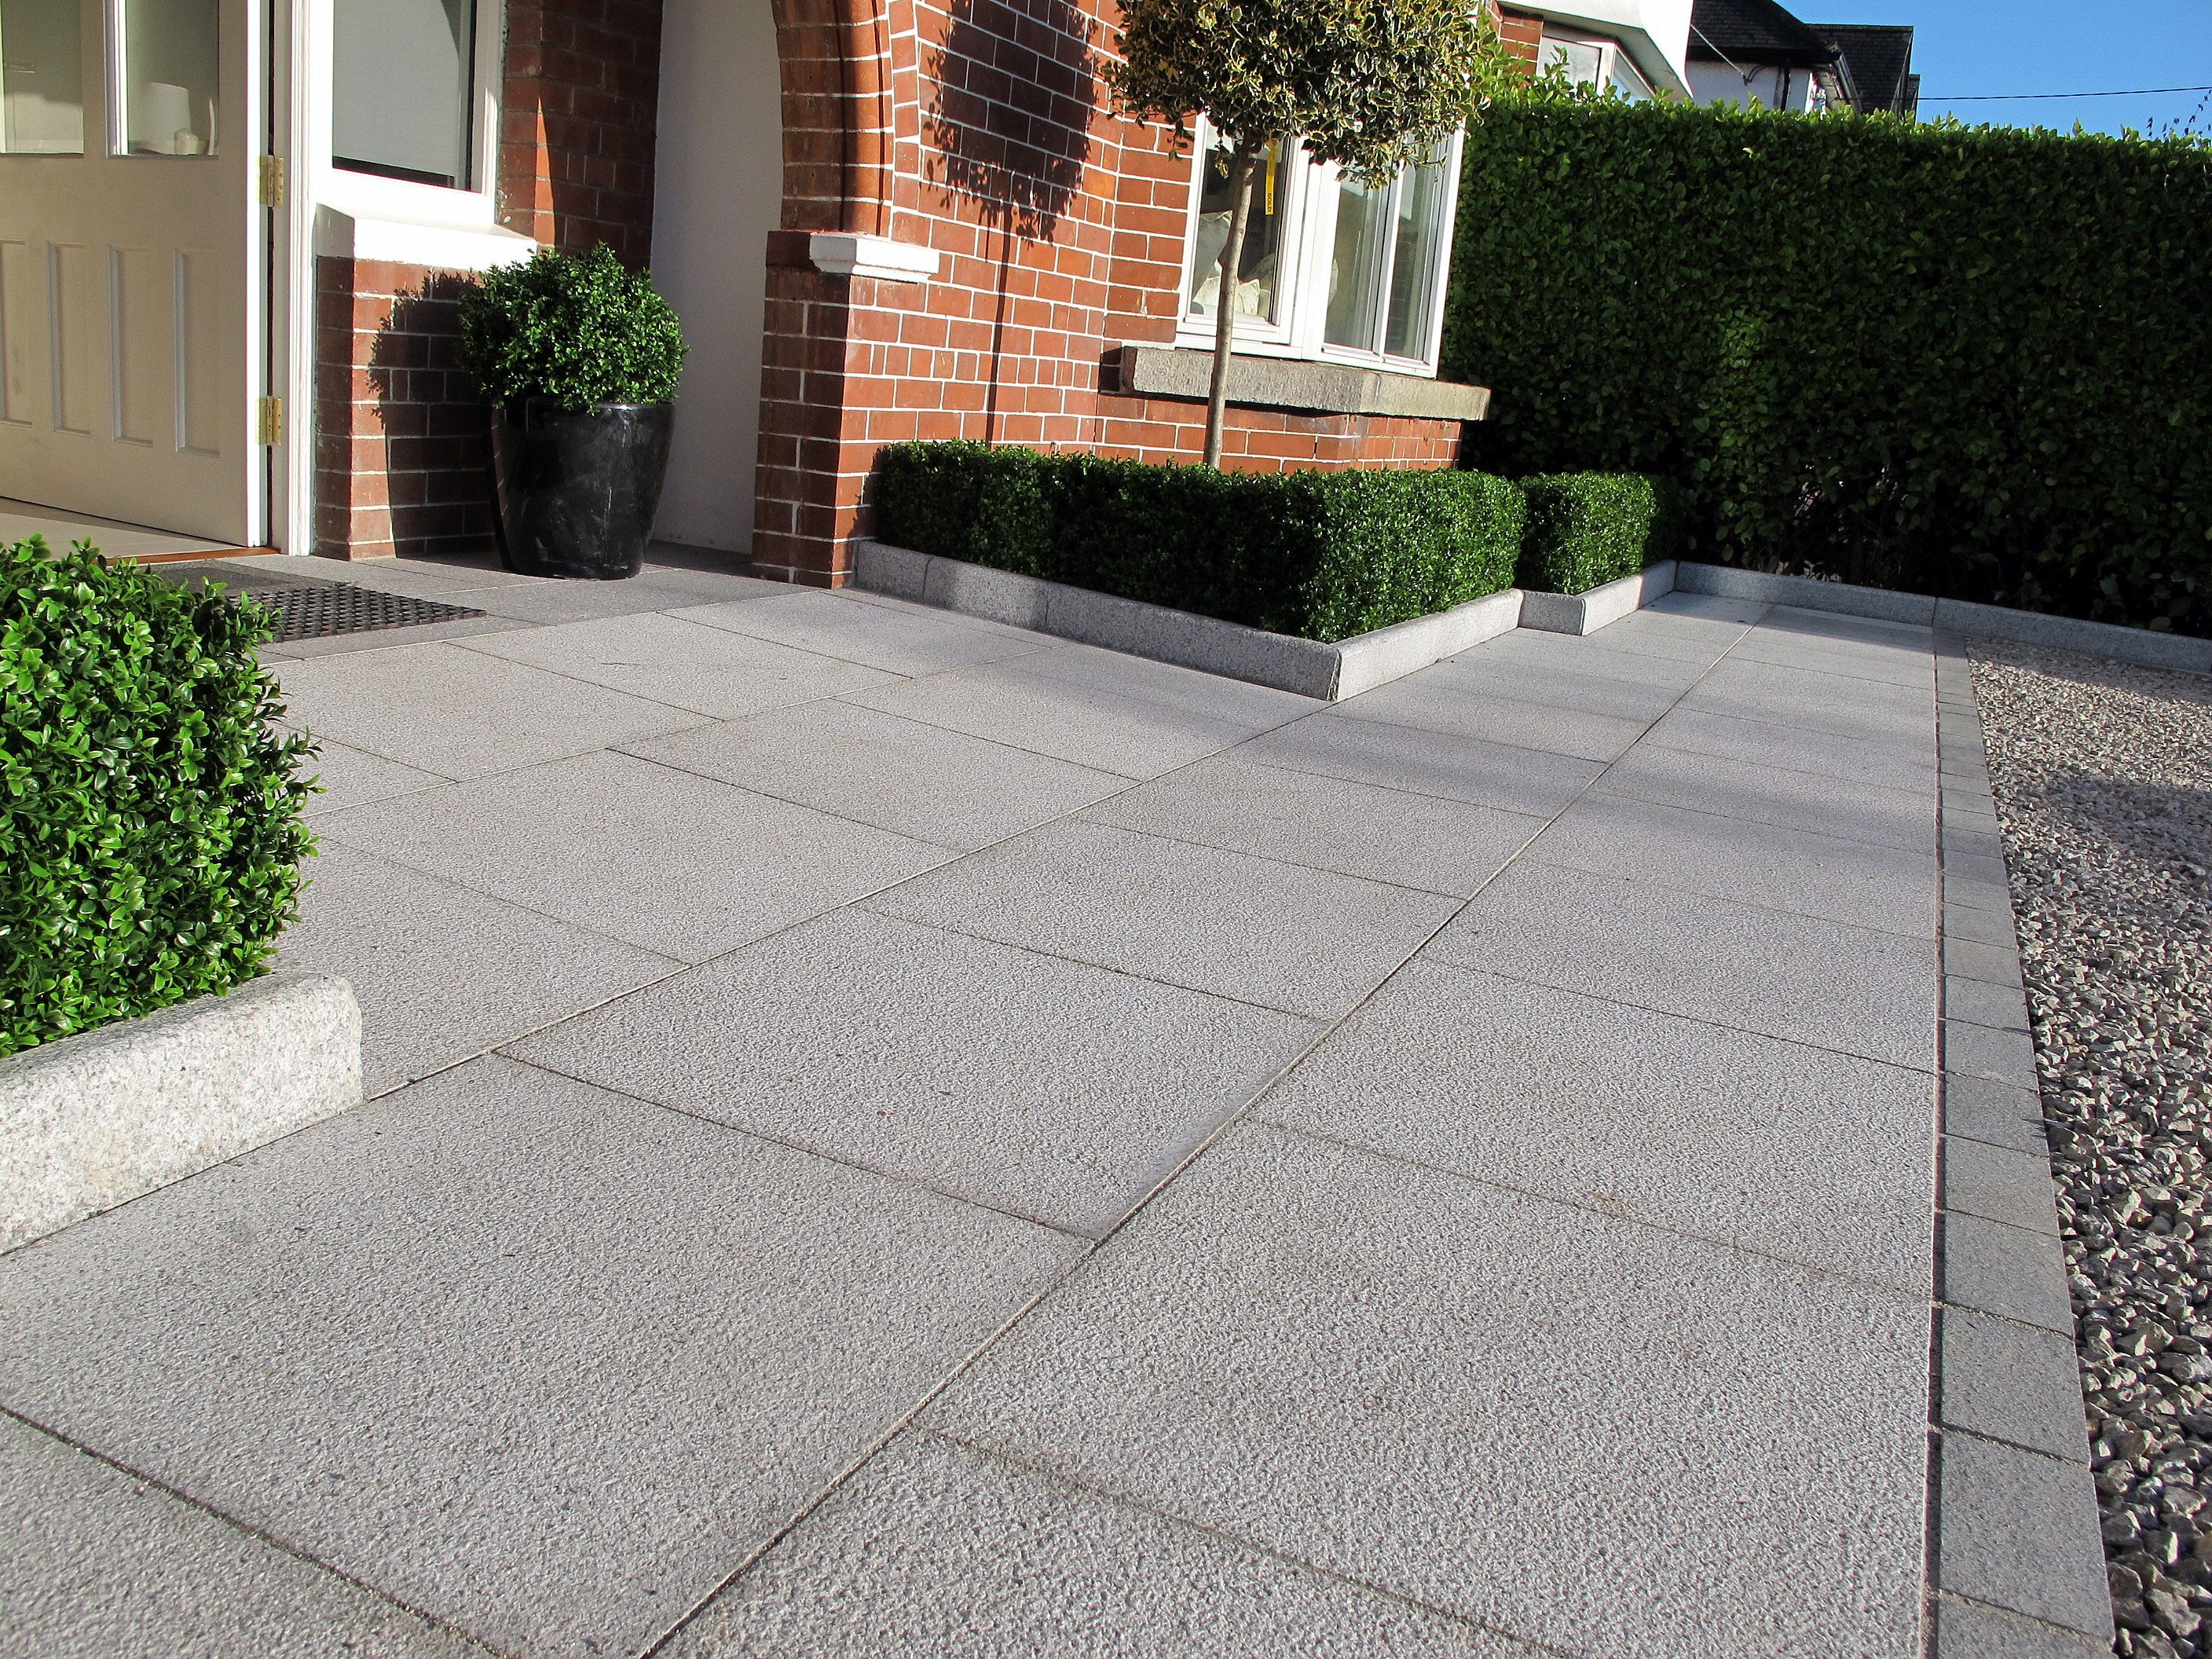 Granite driveway design landscaping ideas terenure for Surface design landscape